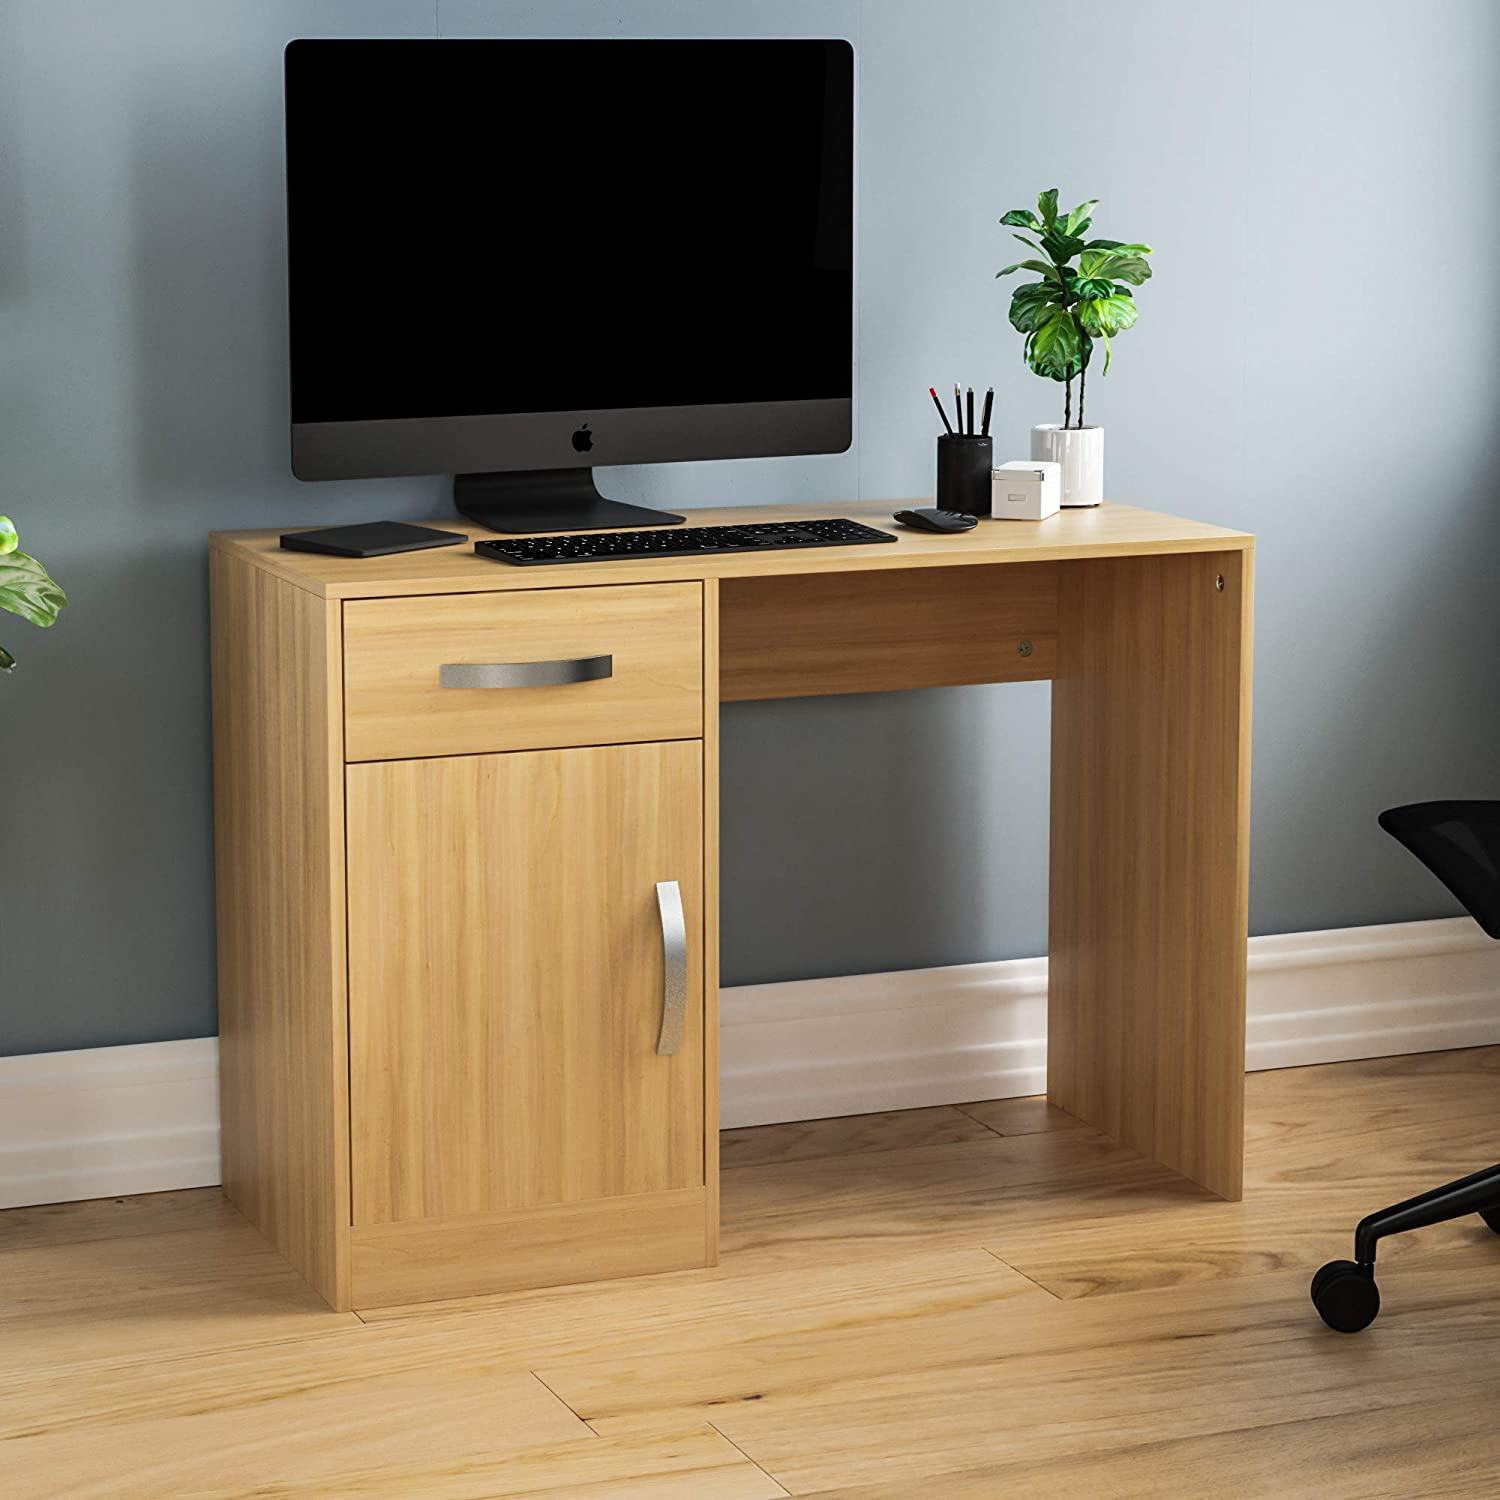 Gaming Study Workstation Storage Cupboard Furniture Home Office PC//Laptop Table Vida Designs Hudson Computer Desk with Drawer and Door Pine